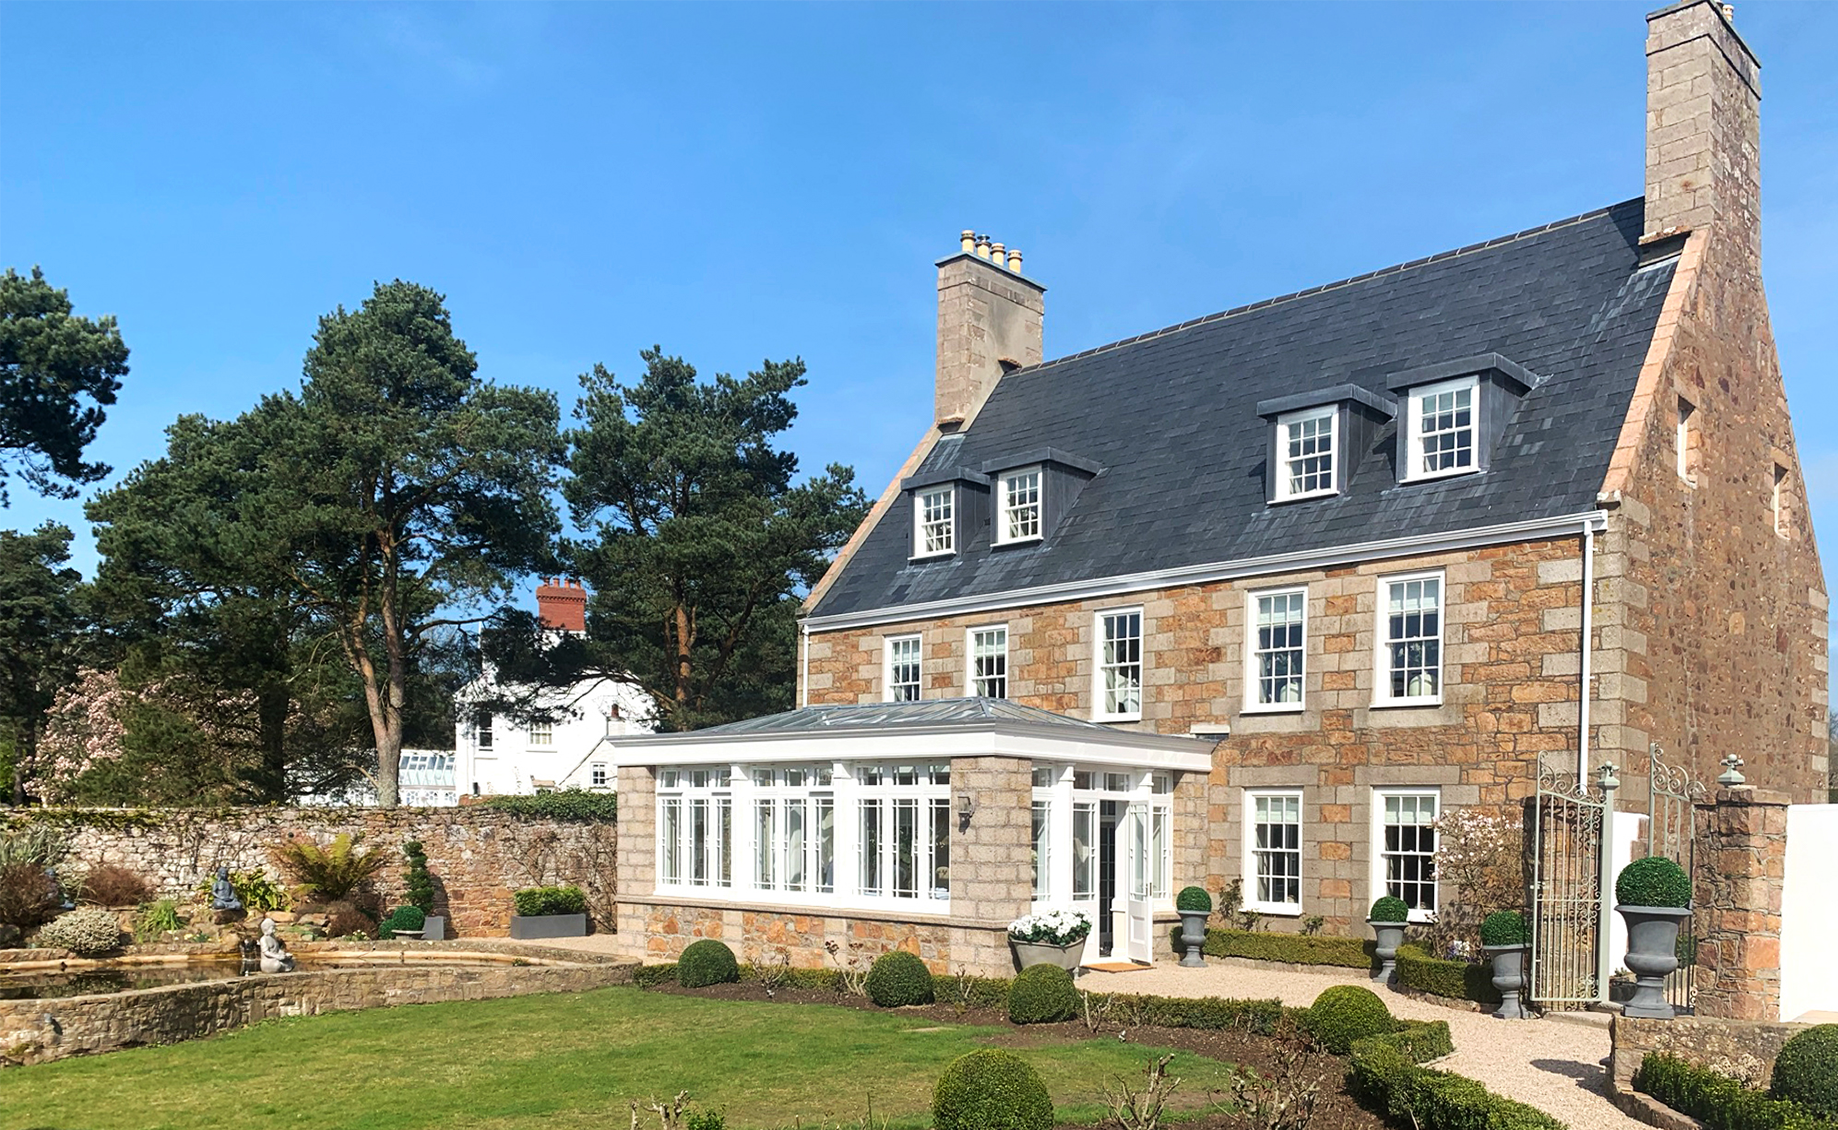 CONSTRUCTION FINISHED FOR LE PONT FARM | Axis Mason